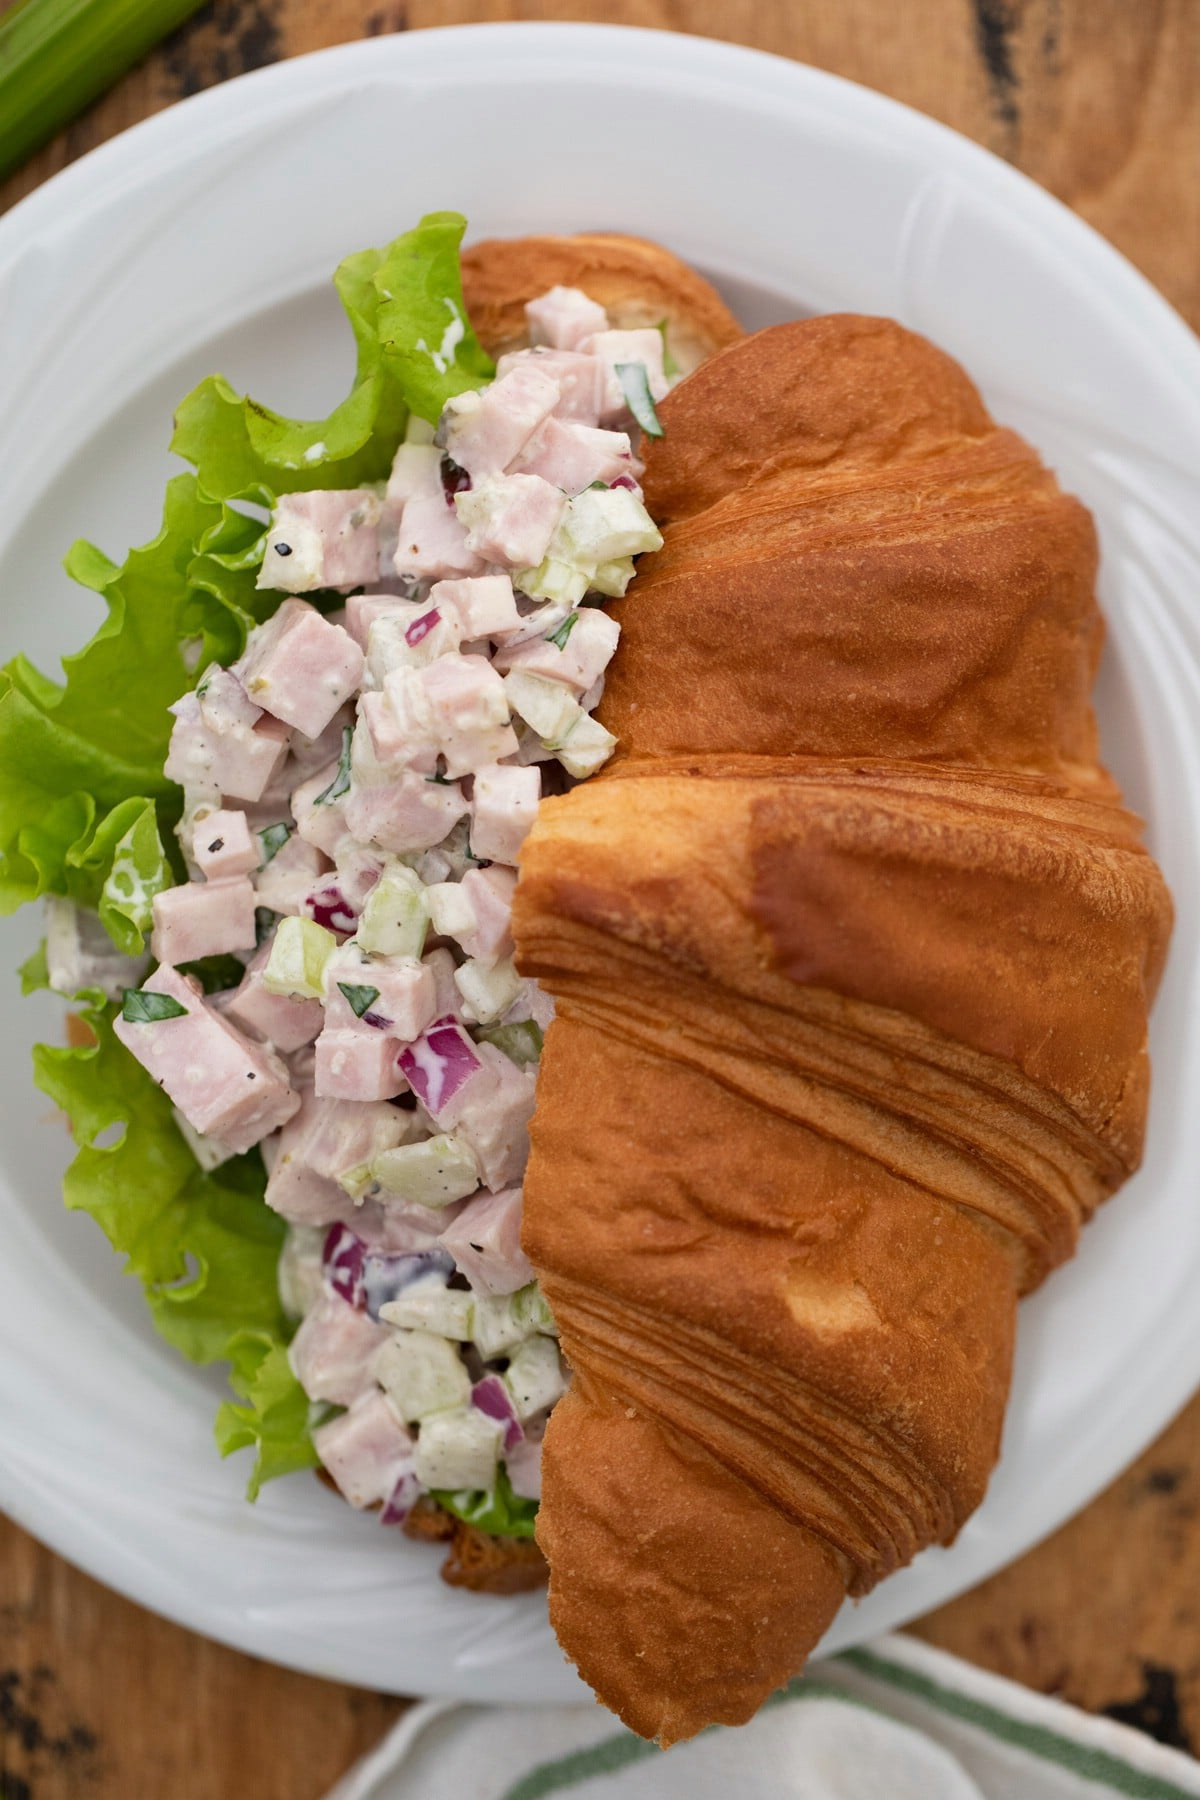 Crossiant with ham salad and lettuce on white plate